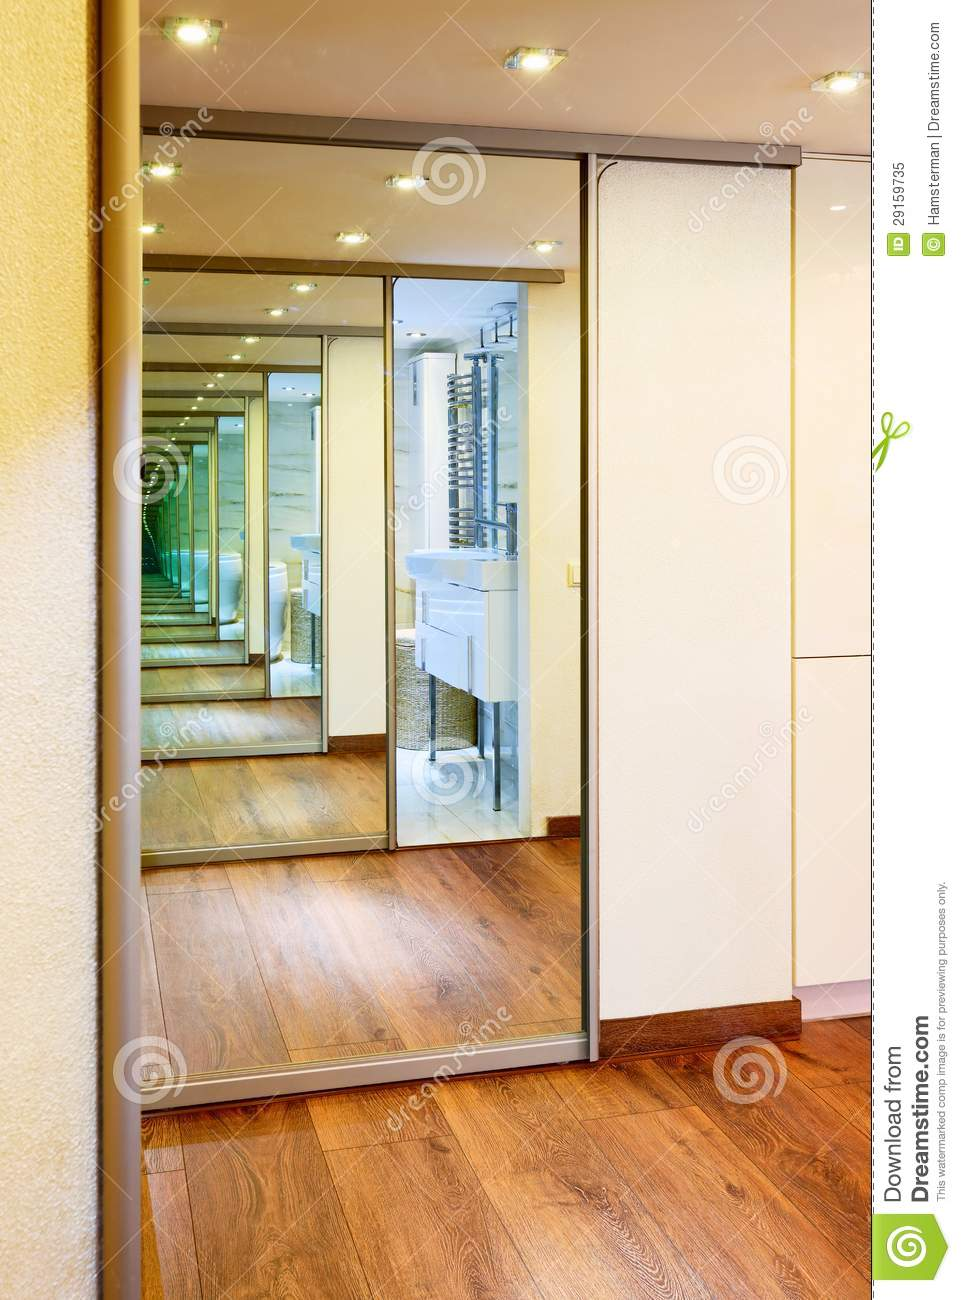 Sliding Door Mirror Wardrobe In Modern Hall Interior